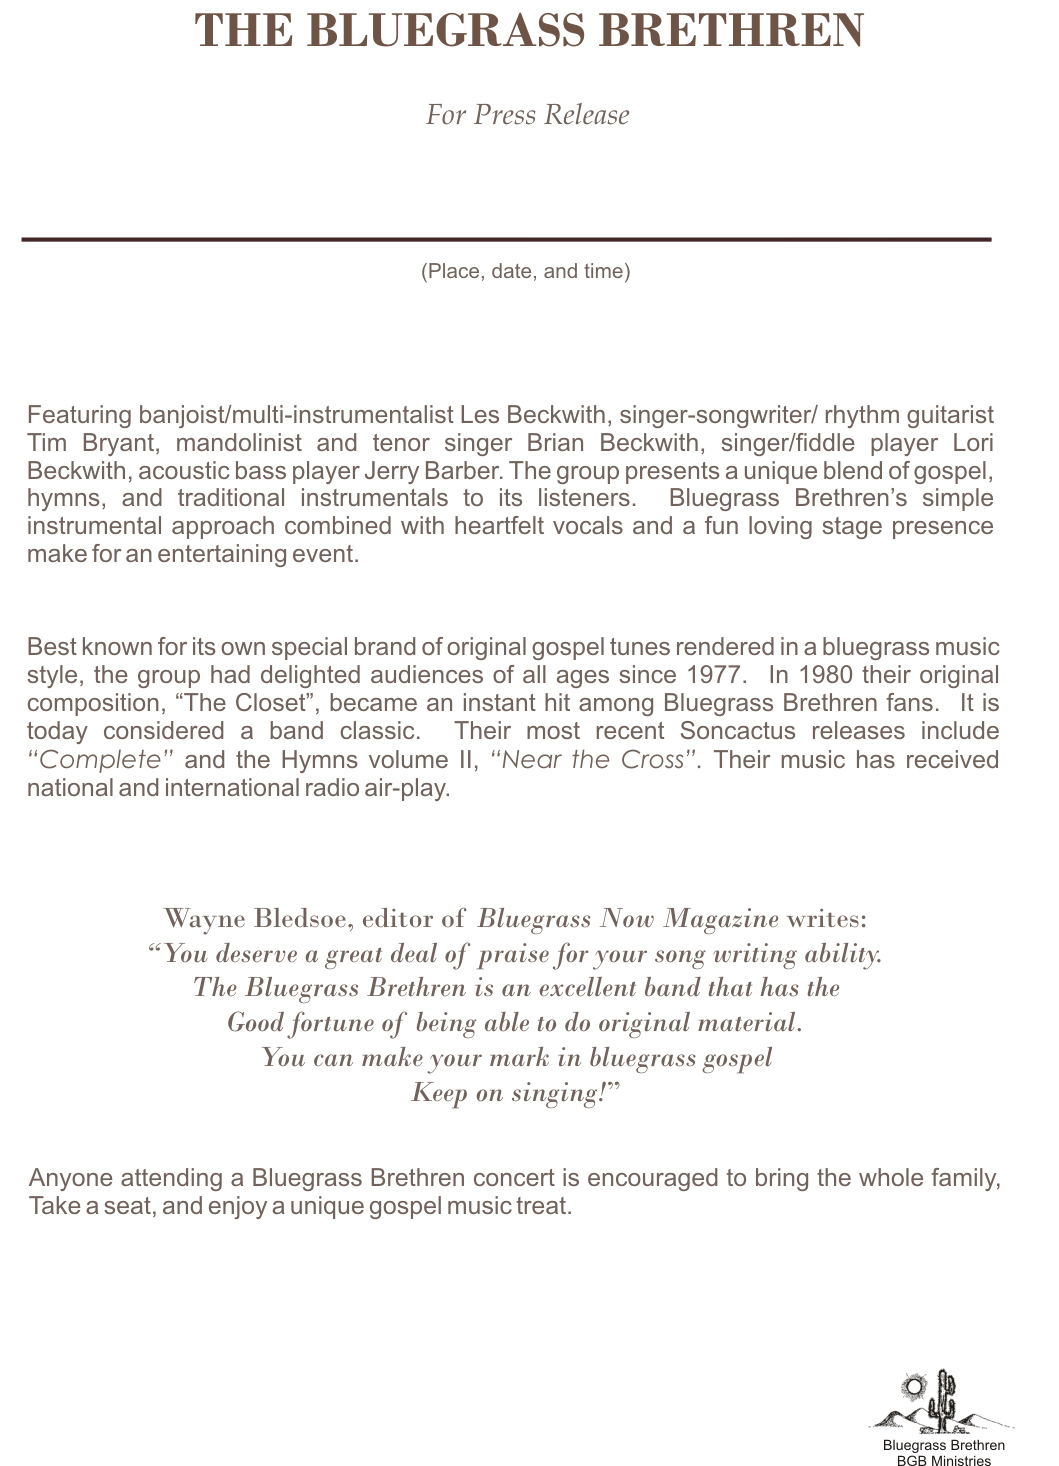 Bluegrass brethren gospel band for Concert press release template